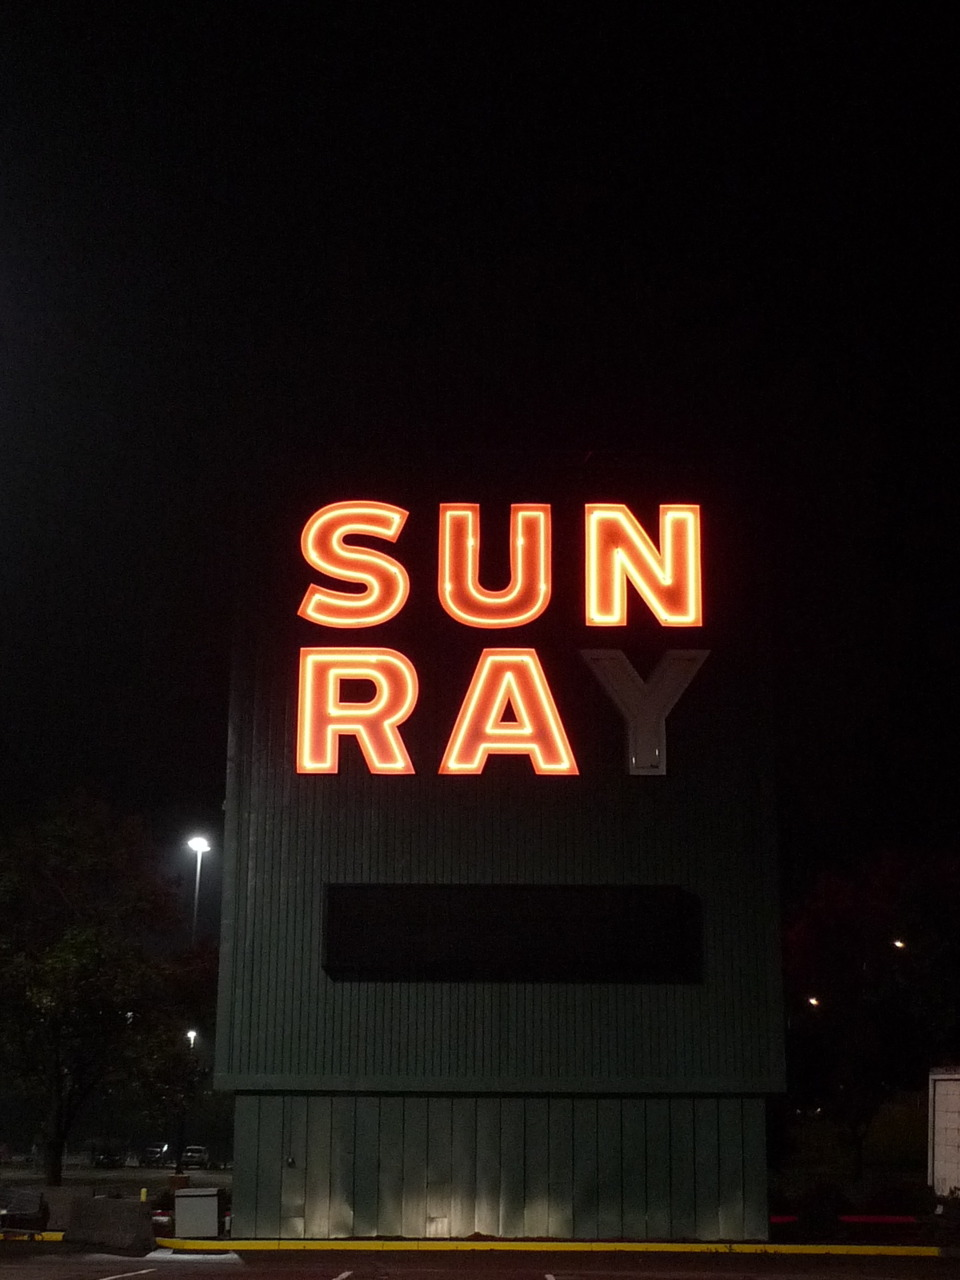 Sun Ra y     This was caught on the way back from Minneapolis. It was too good to not to turn around and hop highway sides. Transcendental bowling alleys seem to be the new thing in Minnesota suburbs.      the most interesting interviews I'd ever heard were of Sun Ra (puzzleoverit)